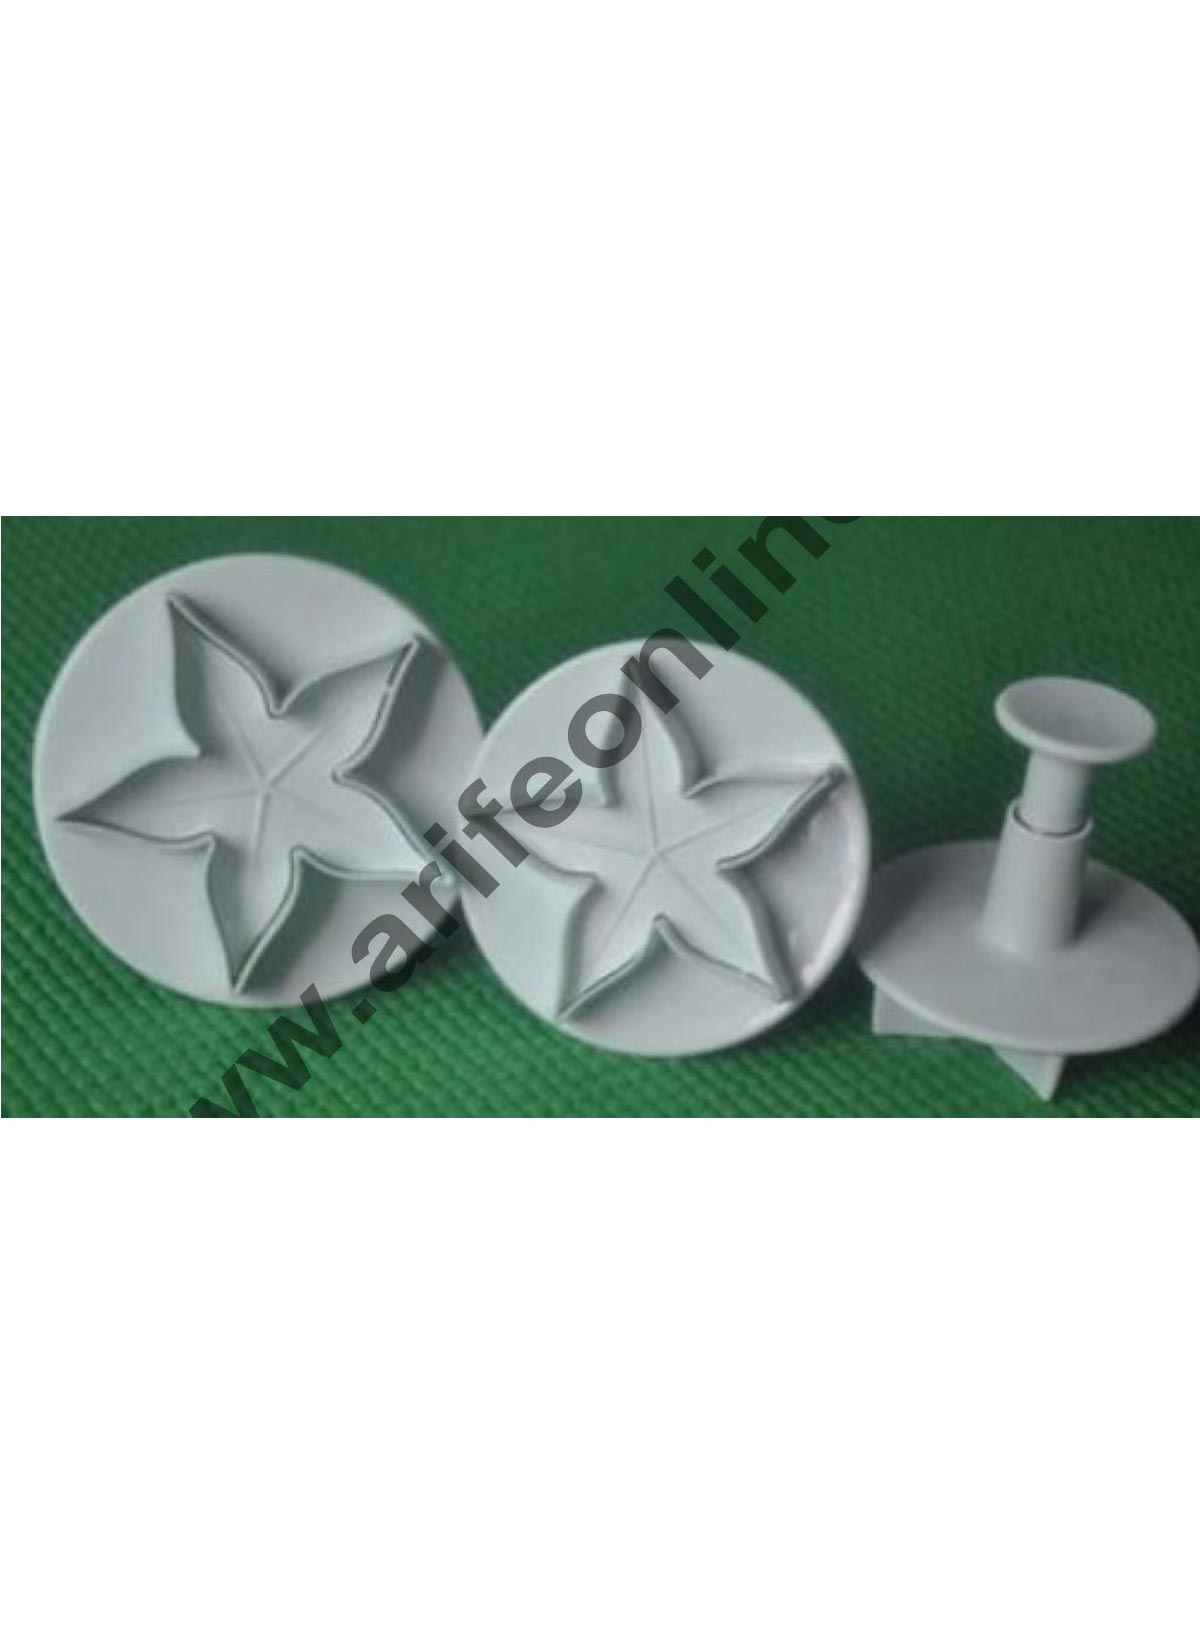 Cake Decor 3 Pcs Set Calyx Plunger Cutter Flower Petal Craft Cake Decorating Tool